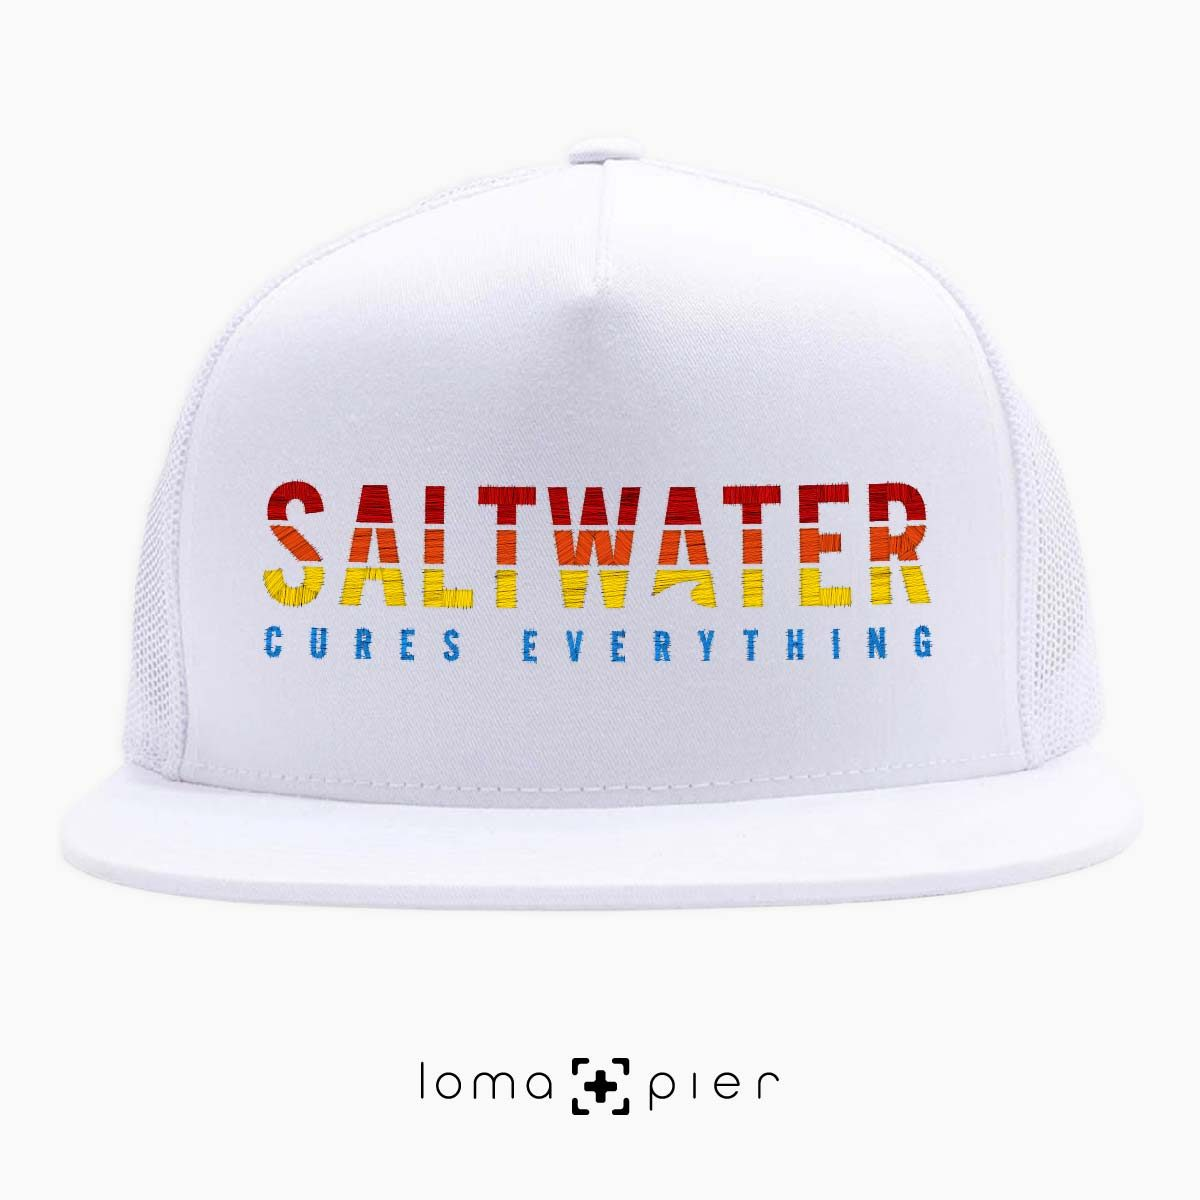 SALTWATER CURES EVERYTHING beach netback hat in white by loma+pier hat store